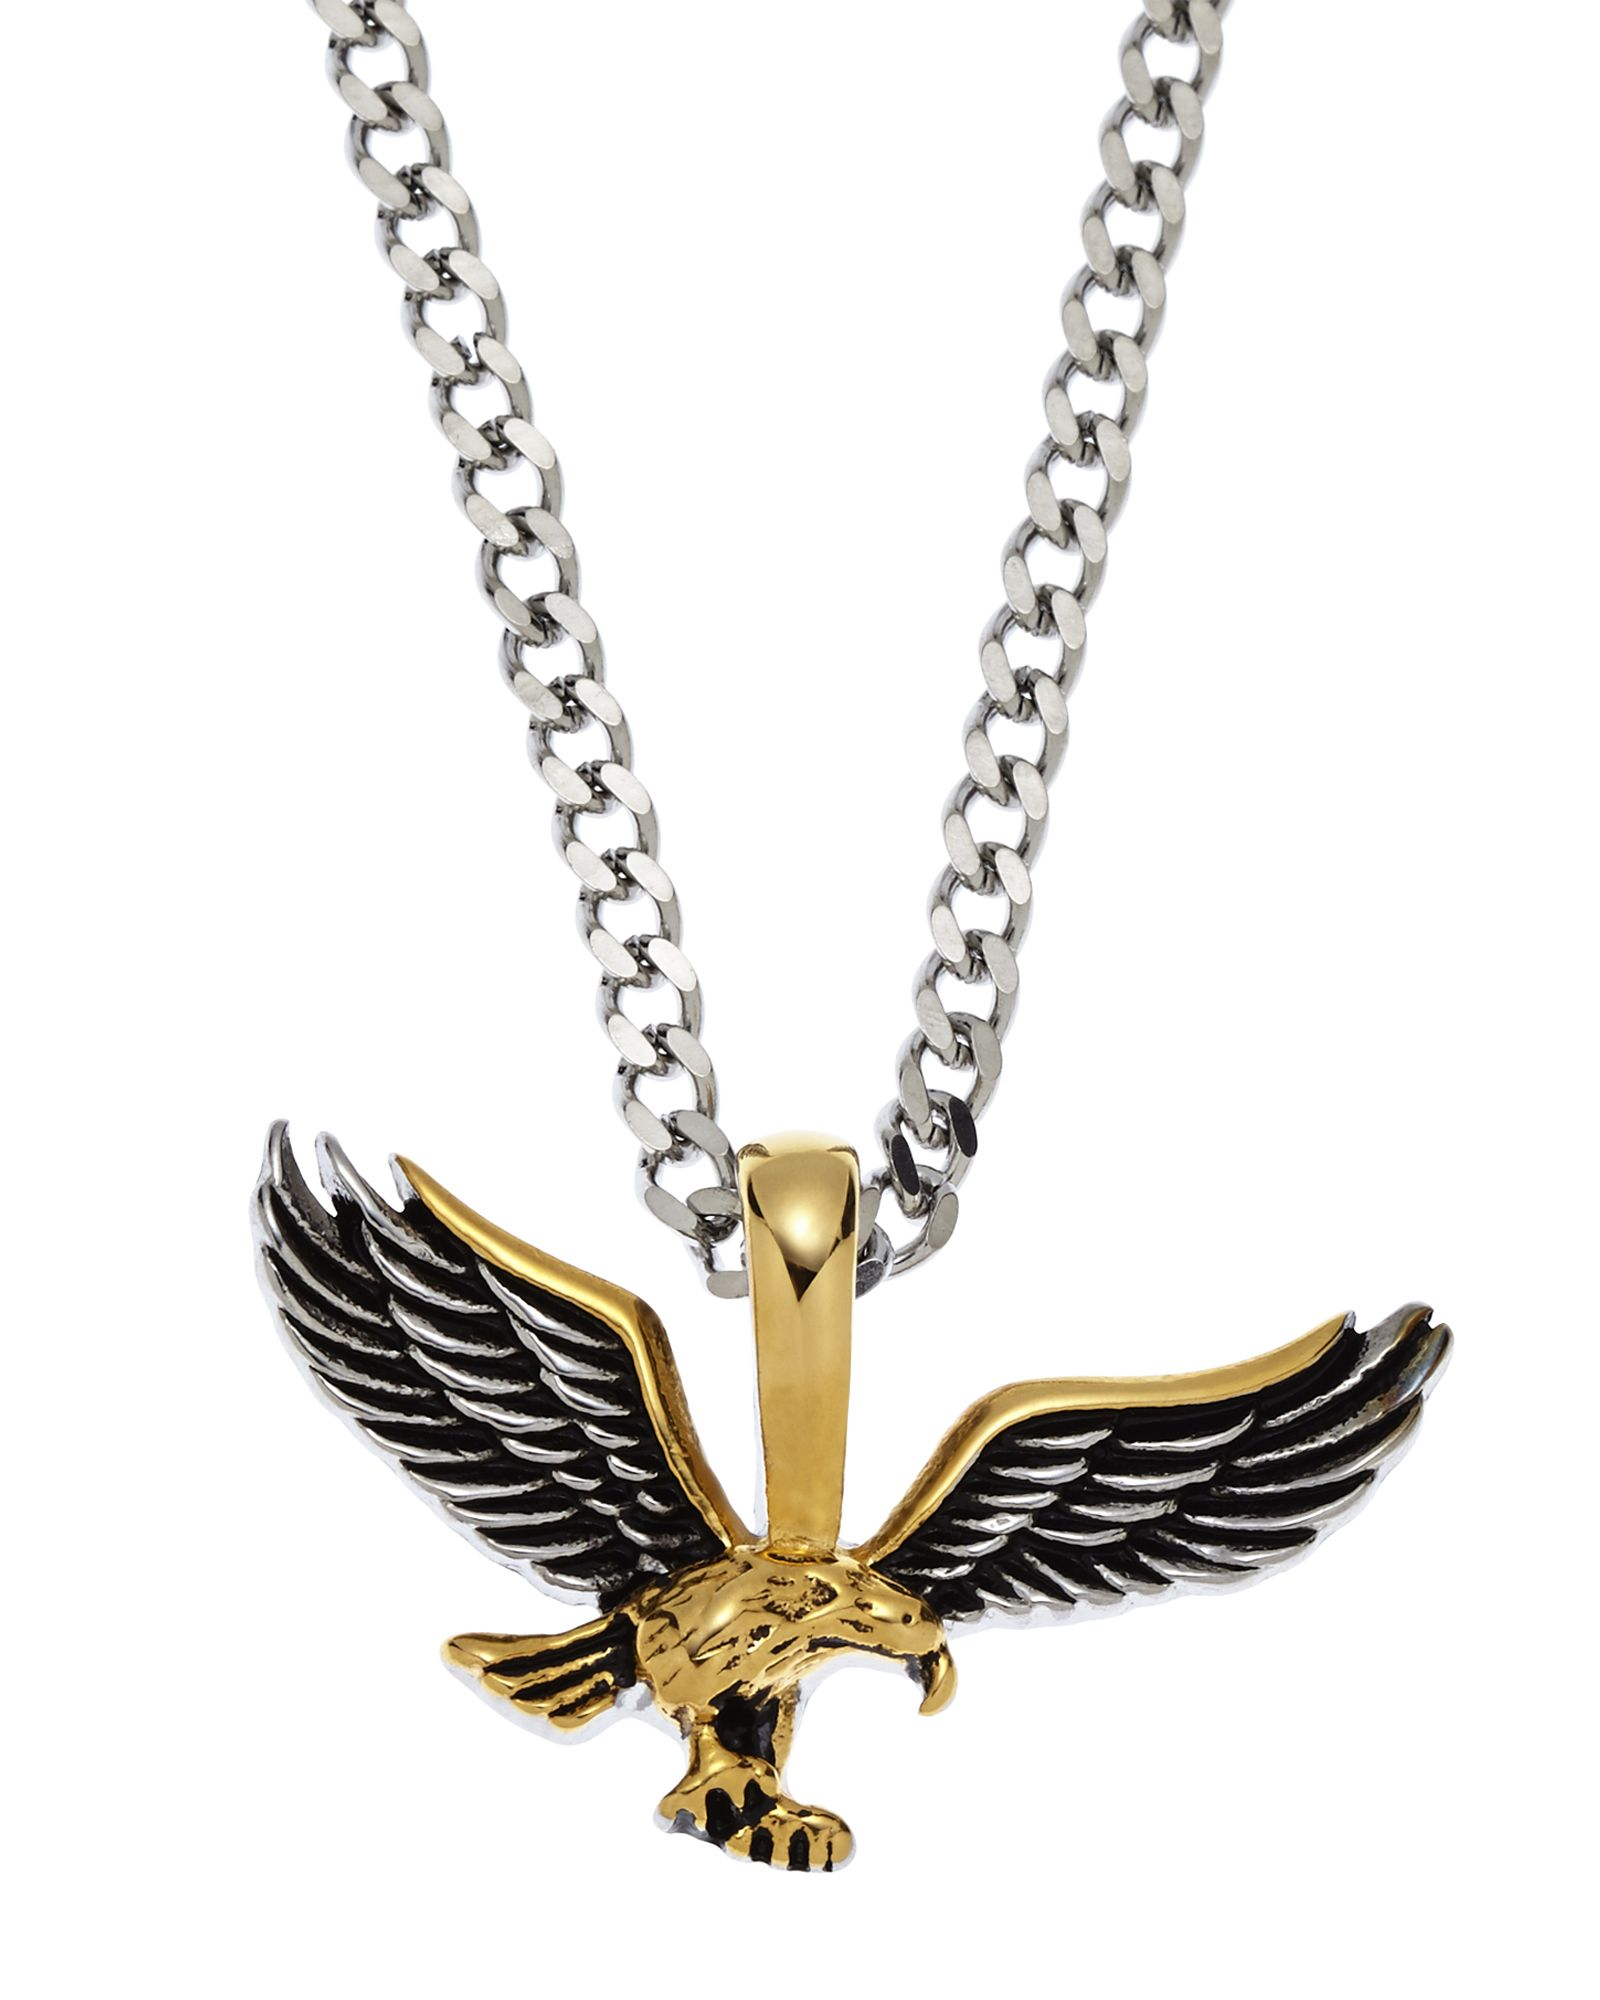 chain freedom gangsta miami diamond products eagle lab micro w pave pendant img cuban